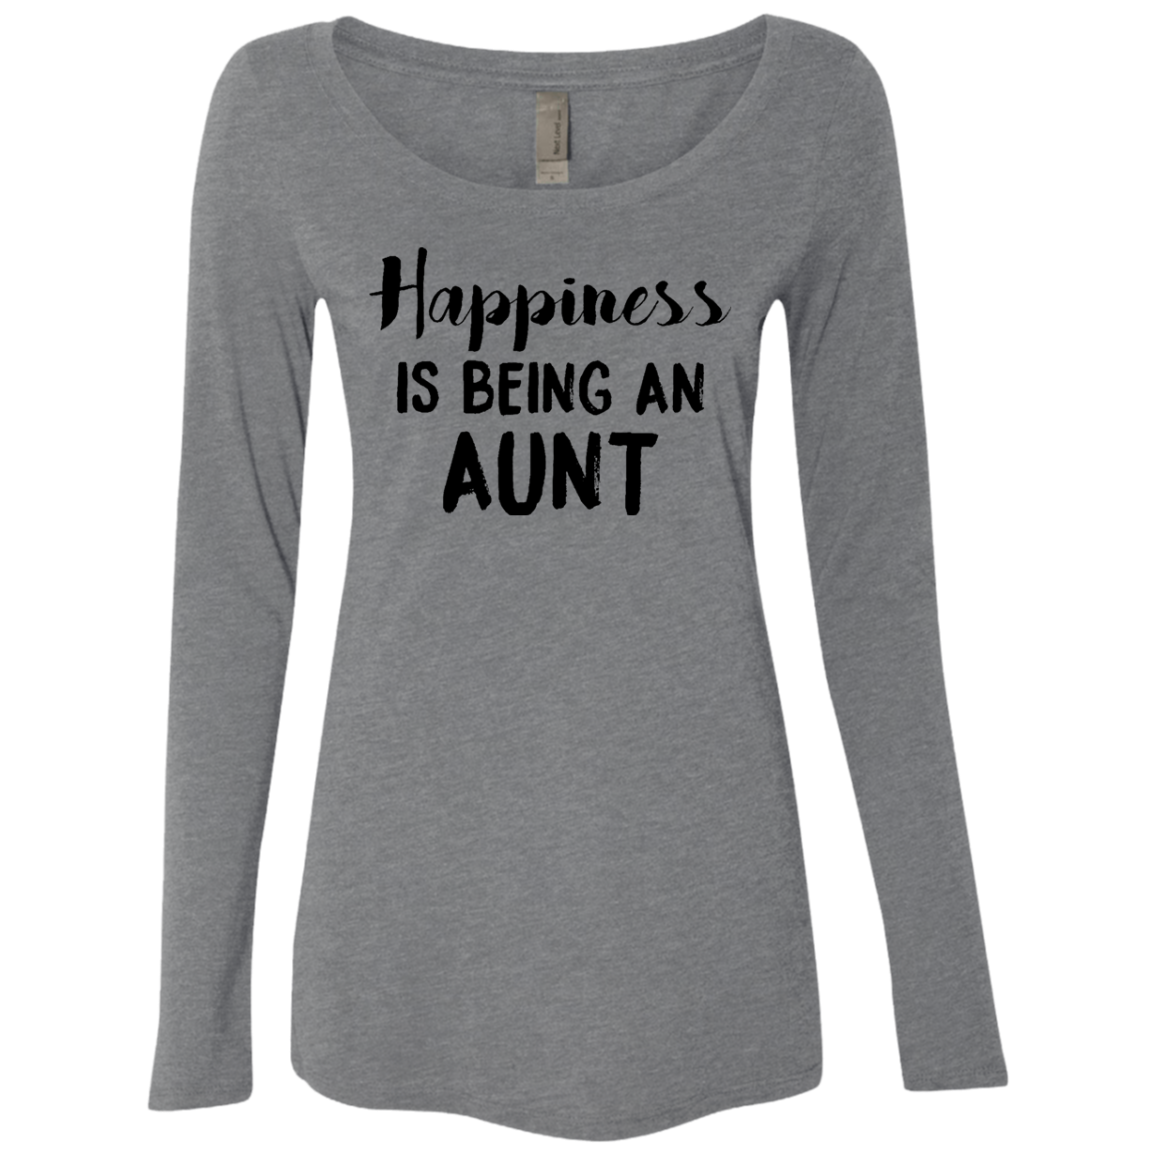 Happinesss Is Being An Aunt Women's Long Sleeve Tee